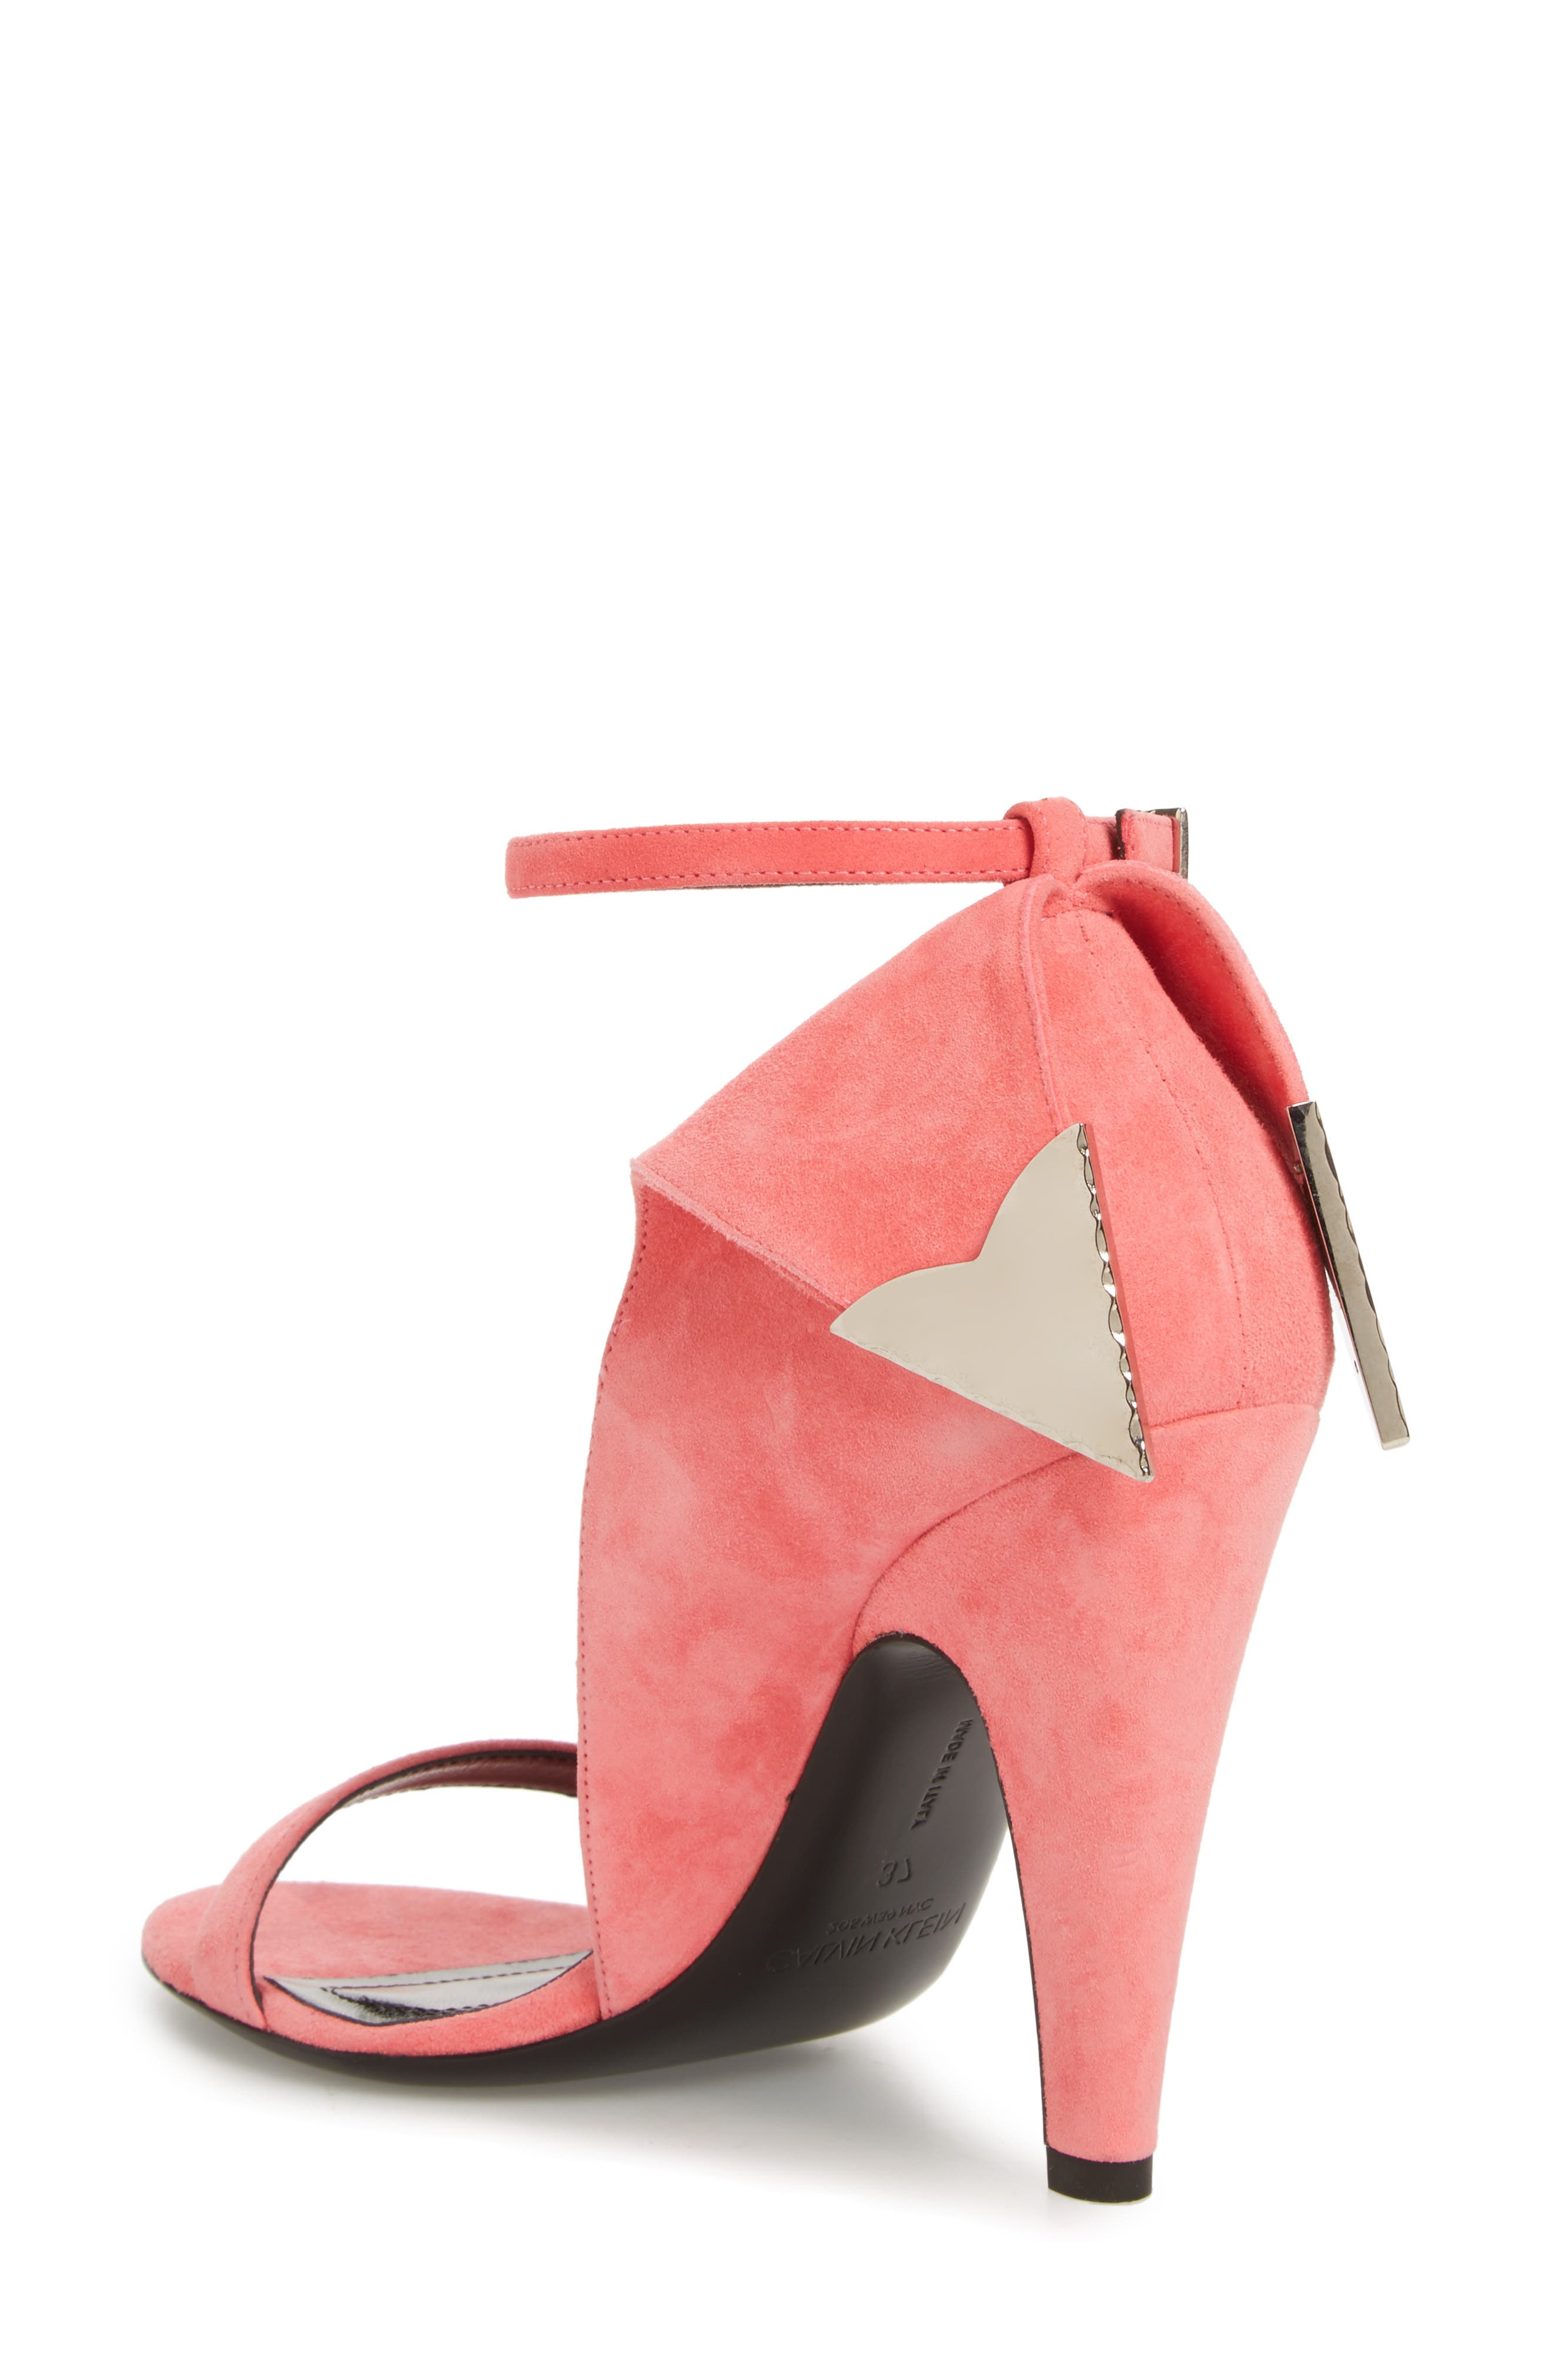 Leititia Ankle Strap Sandal,                             Alternate thumbnail 2, color,                             Blush